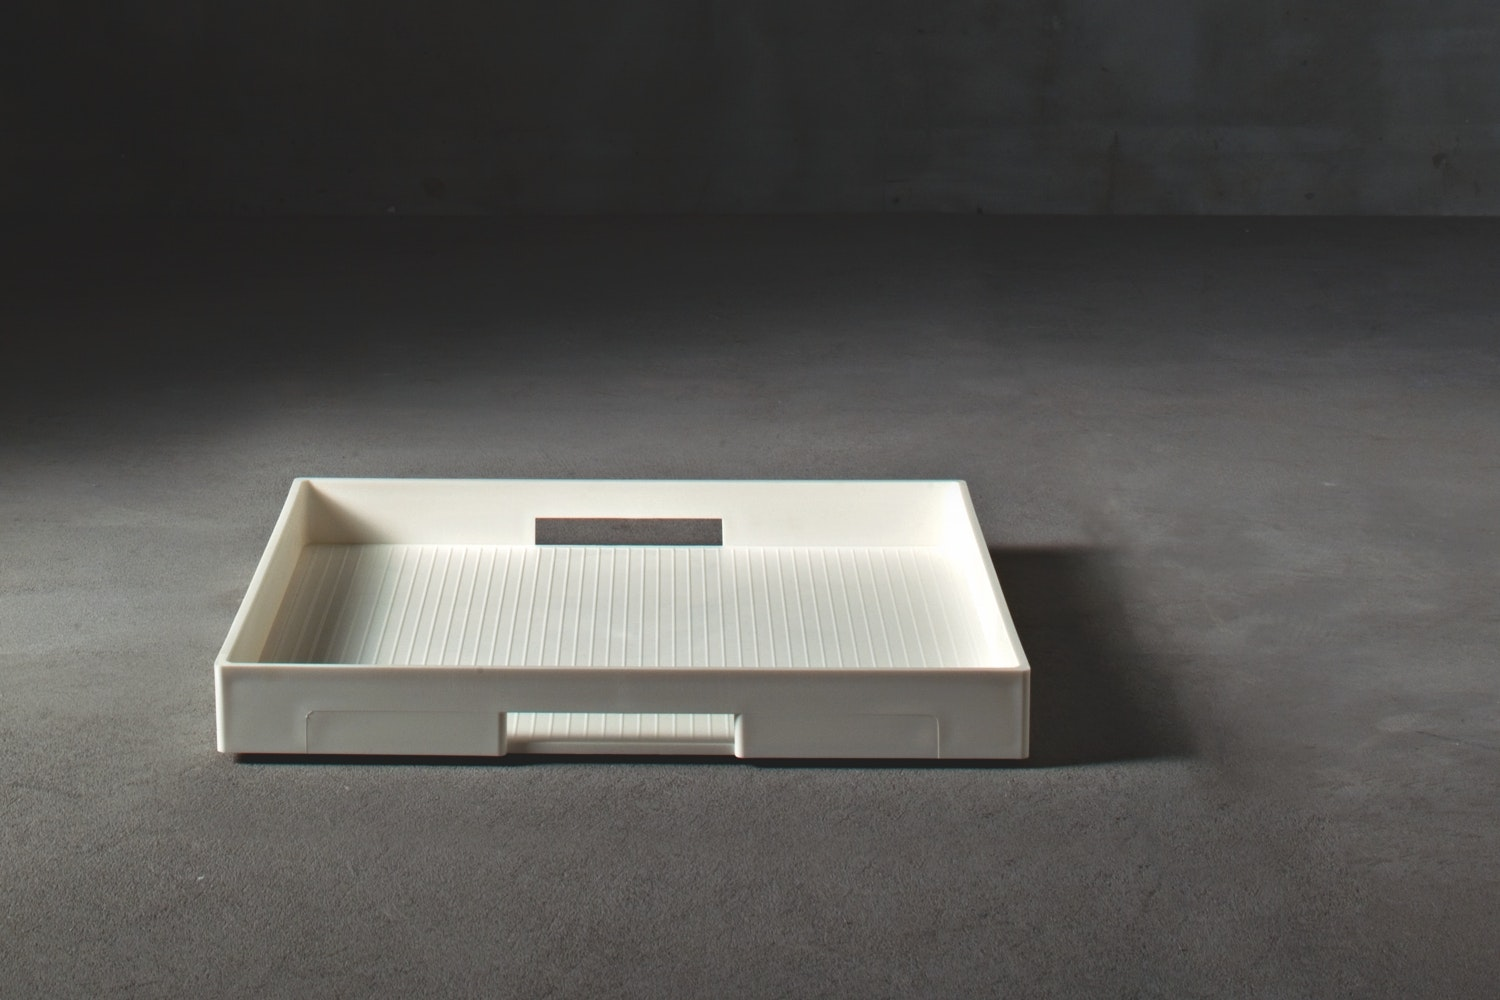 Handy Tray by Luisa Bocchietto for Serralunga